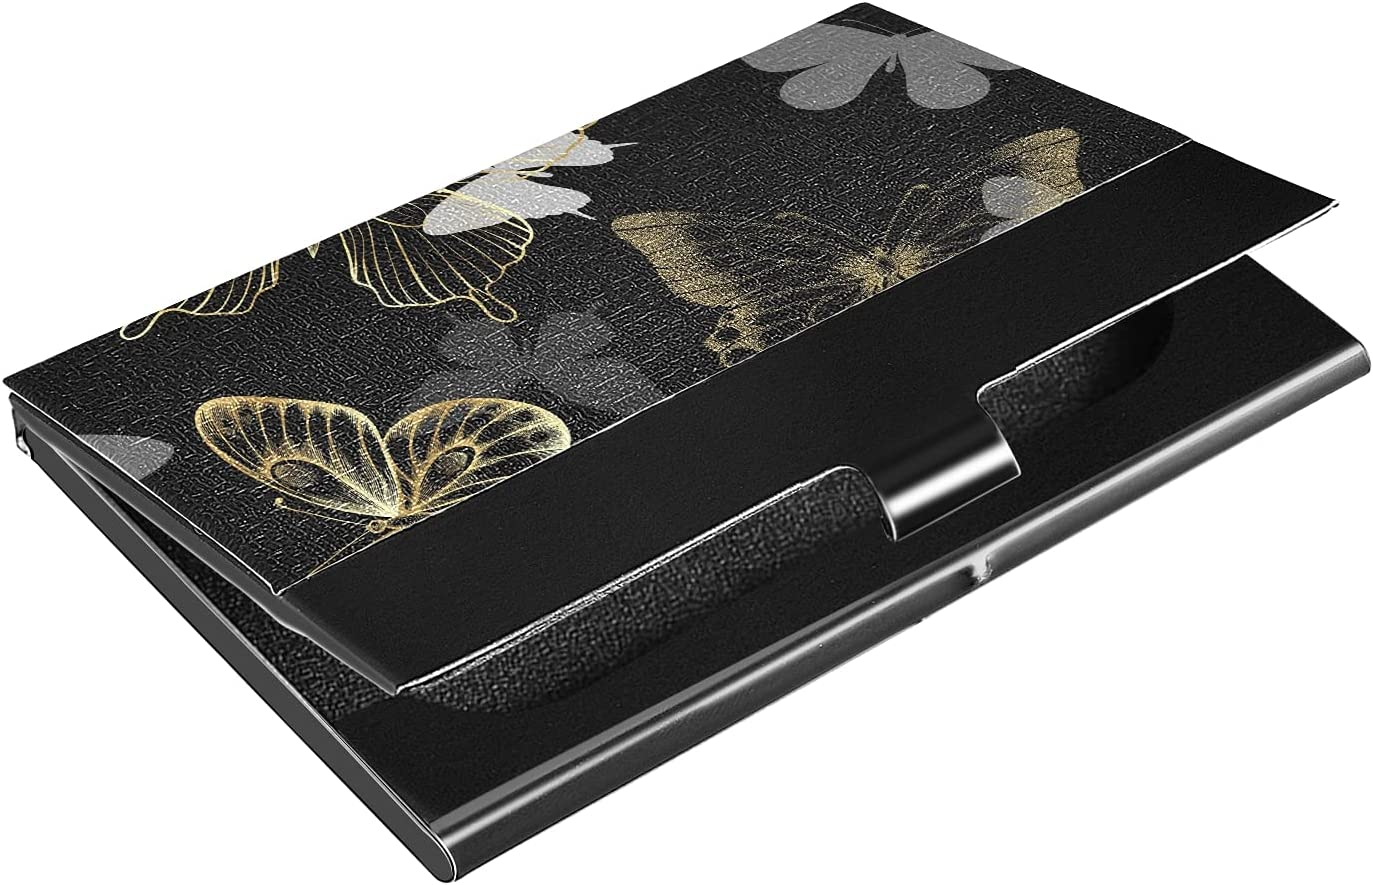 OTVEE Golden Butterflies Business Card Colorado Springs Purchase Mall S Wallet Holder Stainless